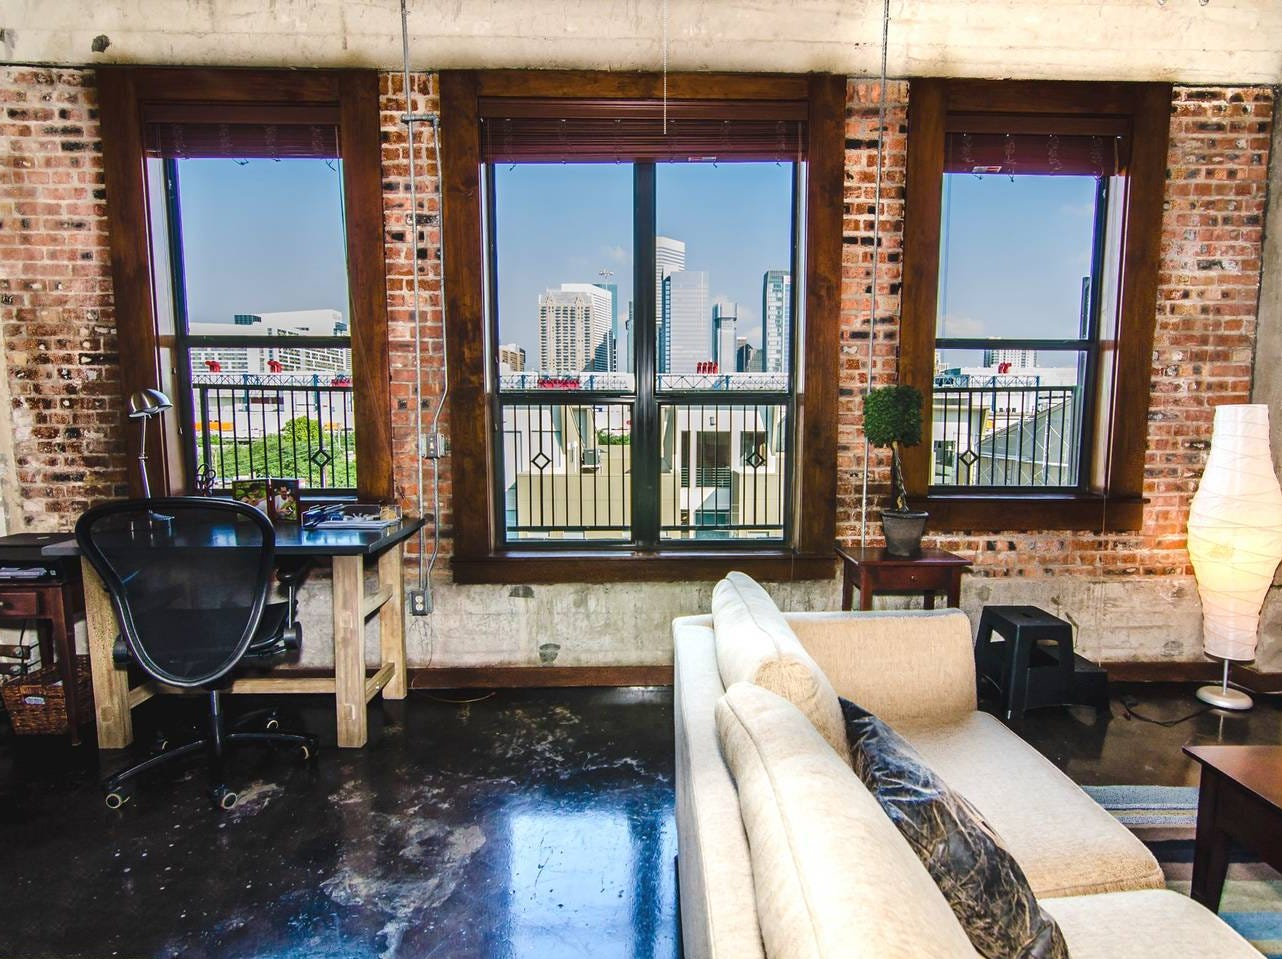 This studio loft is located in the heart of downtown Houston. It's industrial look will have guests amazed by its modern styling.